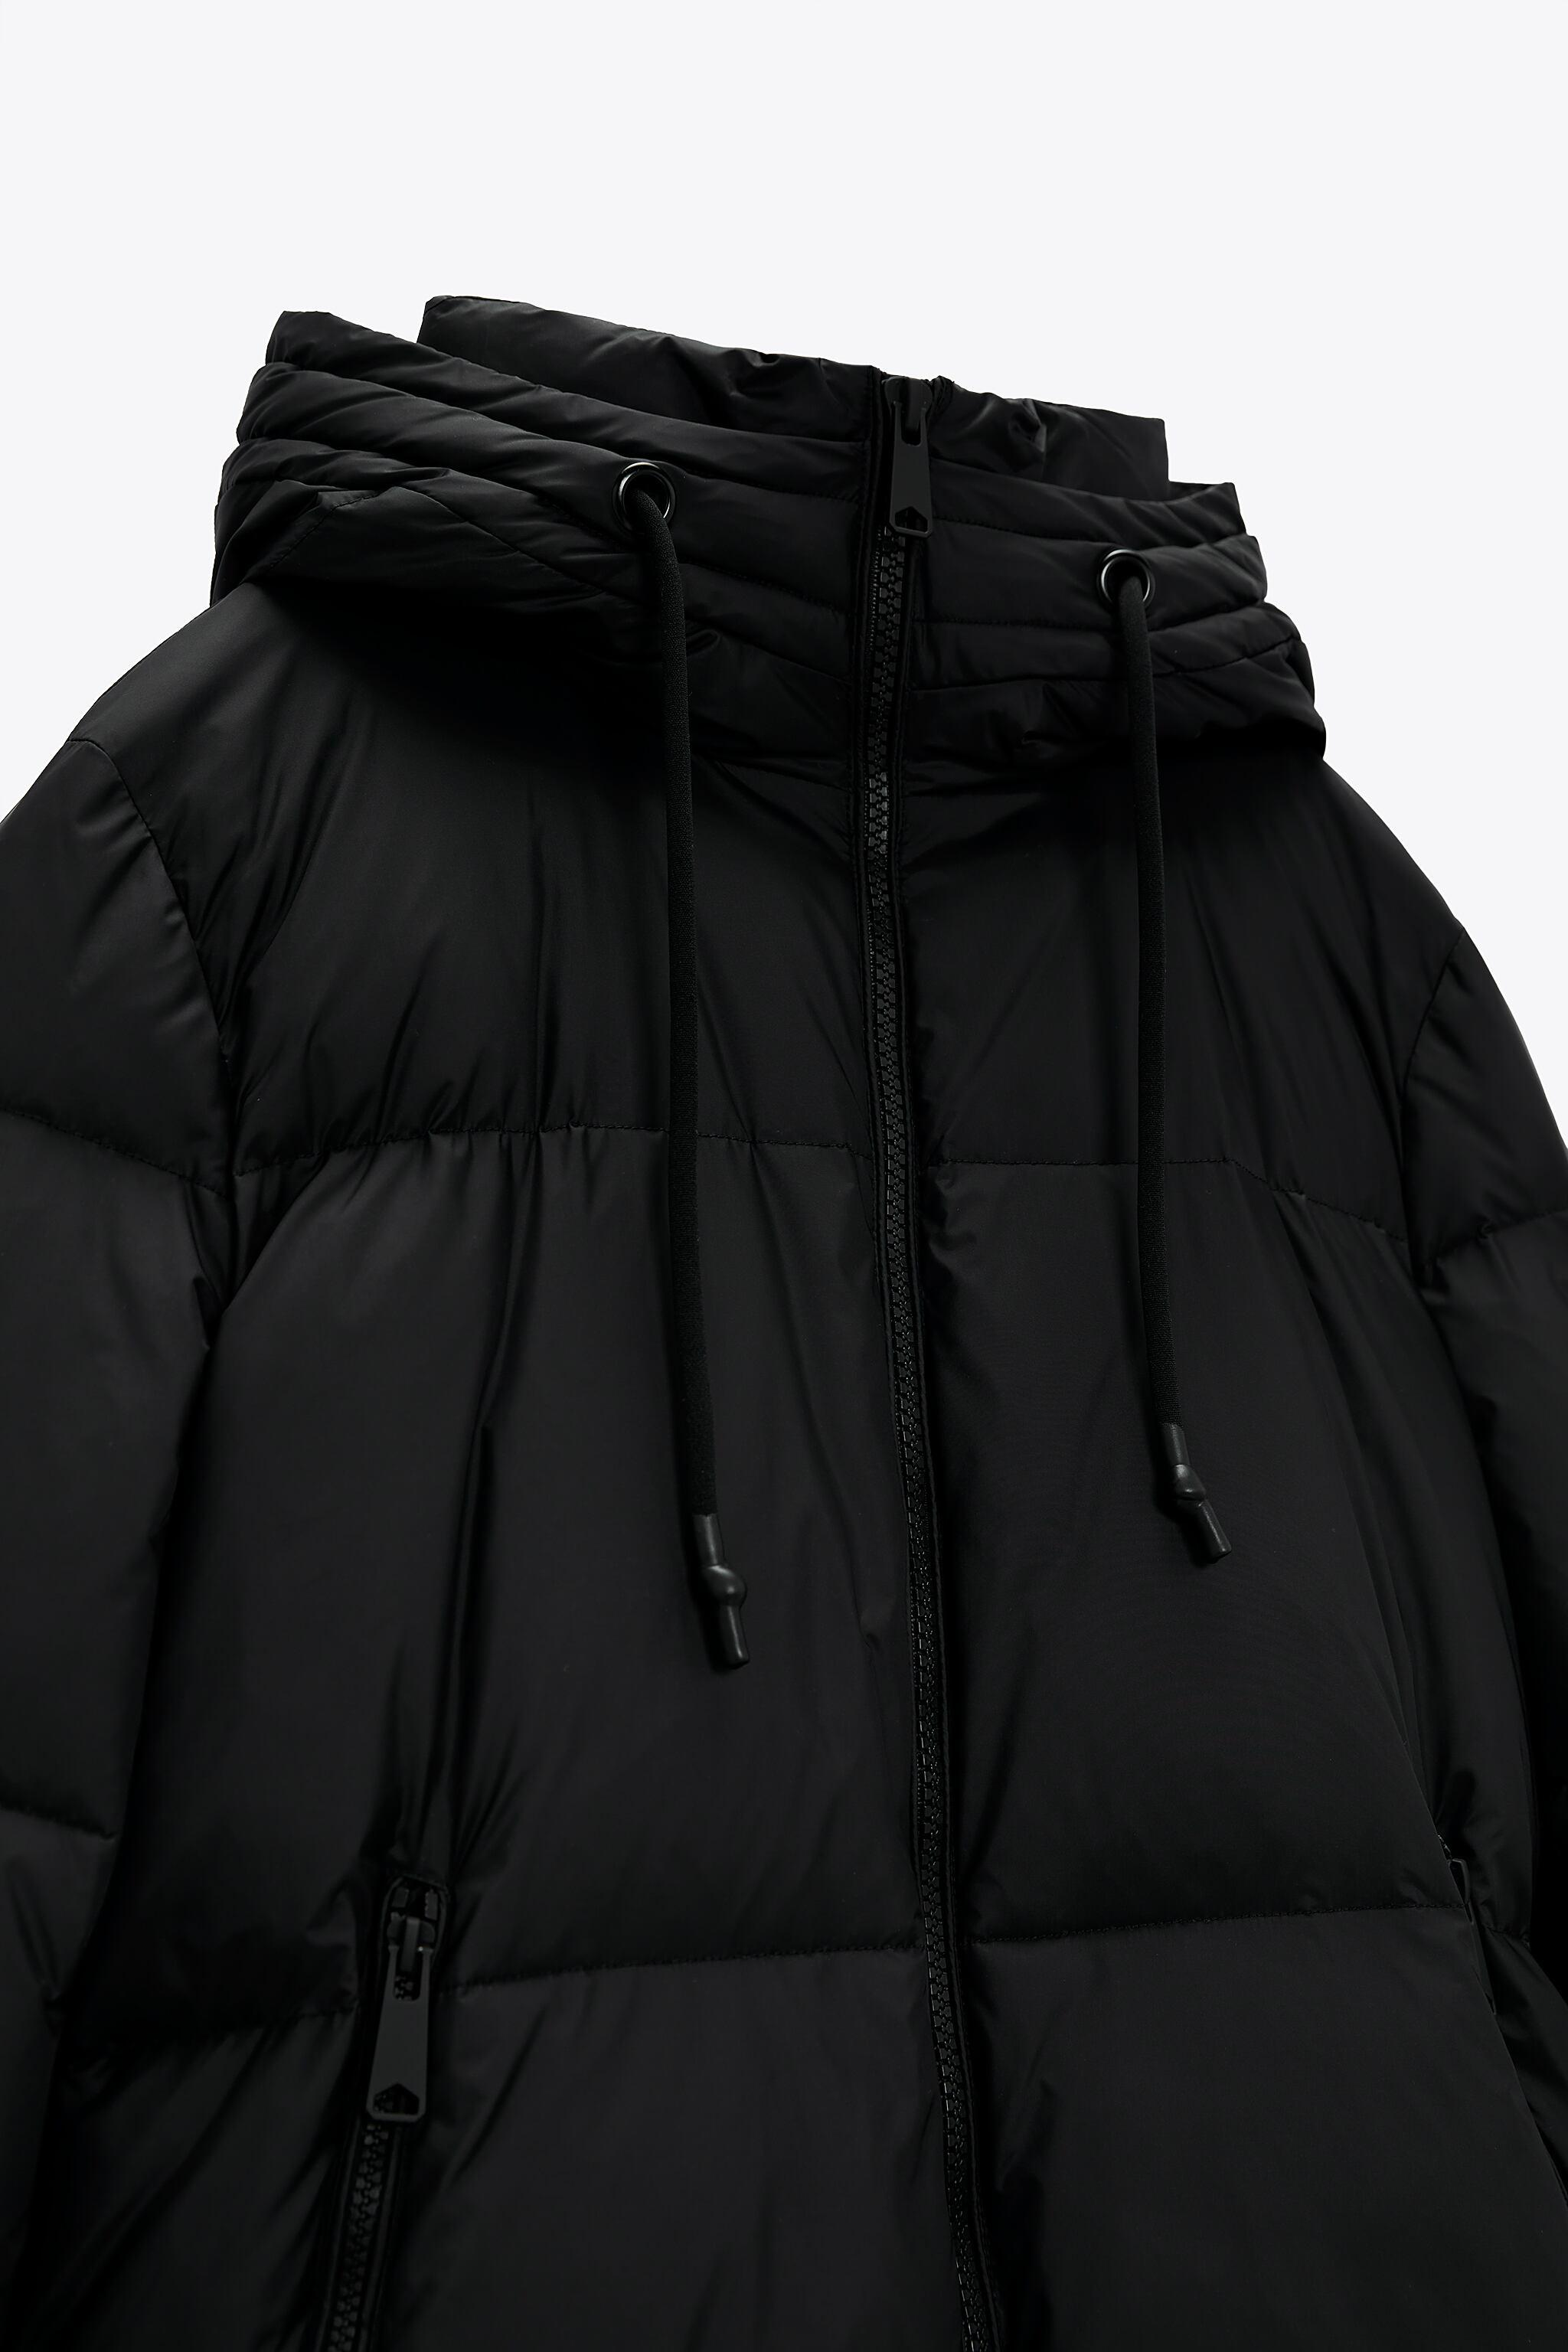 WATER AND WIND PROTECTION OVERSIZED DOWN COAT 8